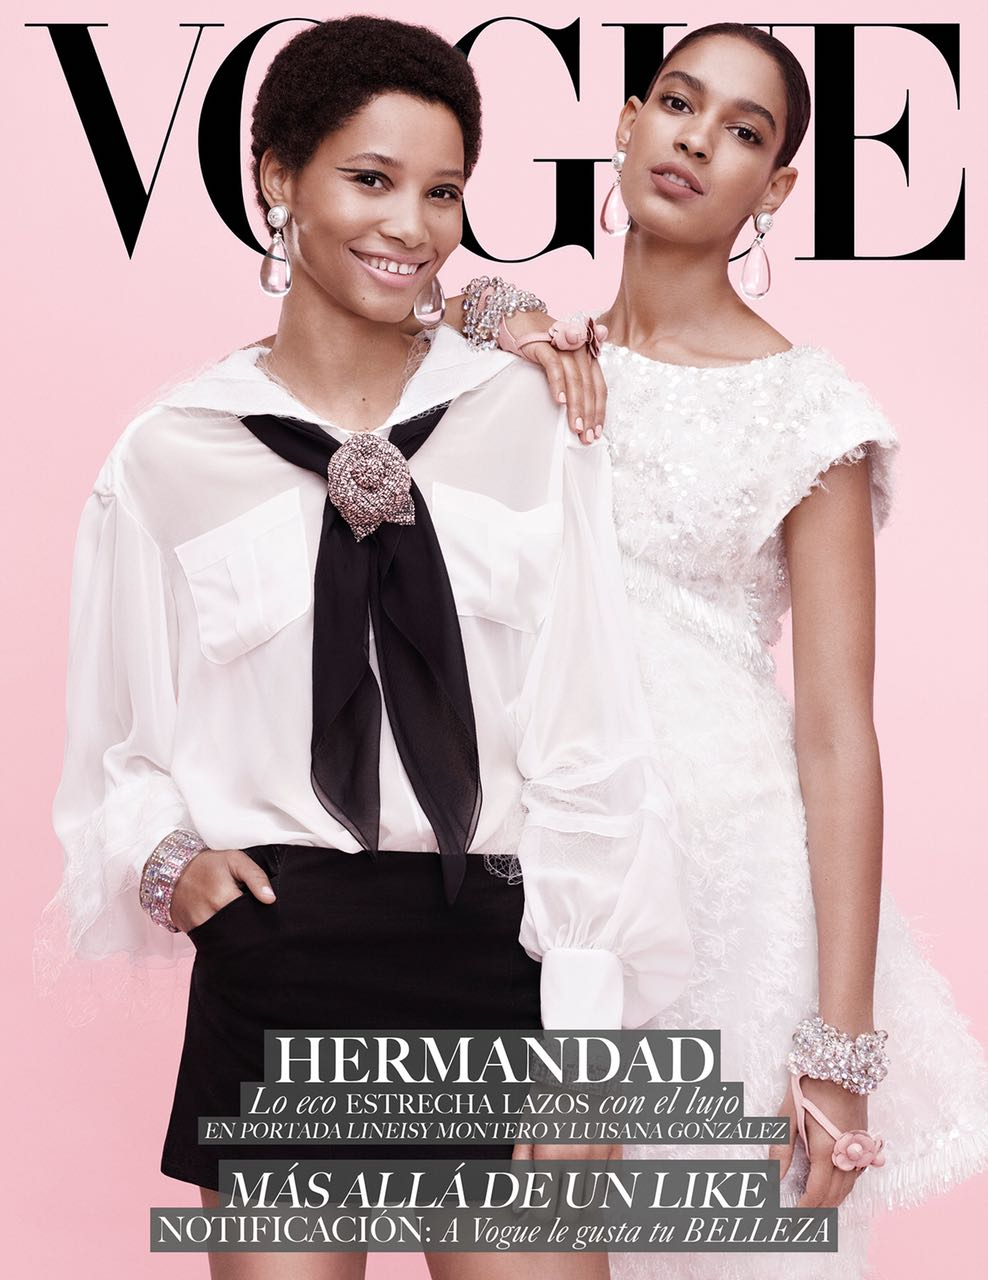 Vogue Latinoamerica Magazine_April 2018_Cover.jpg